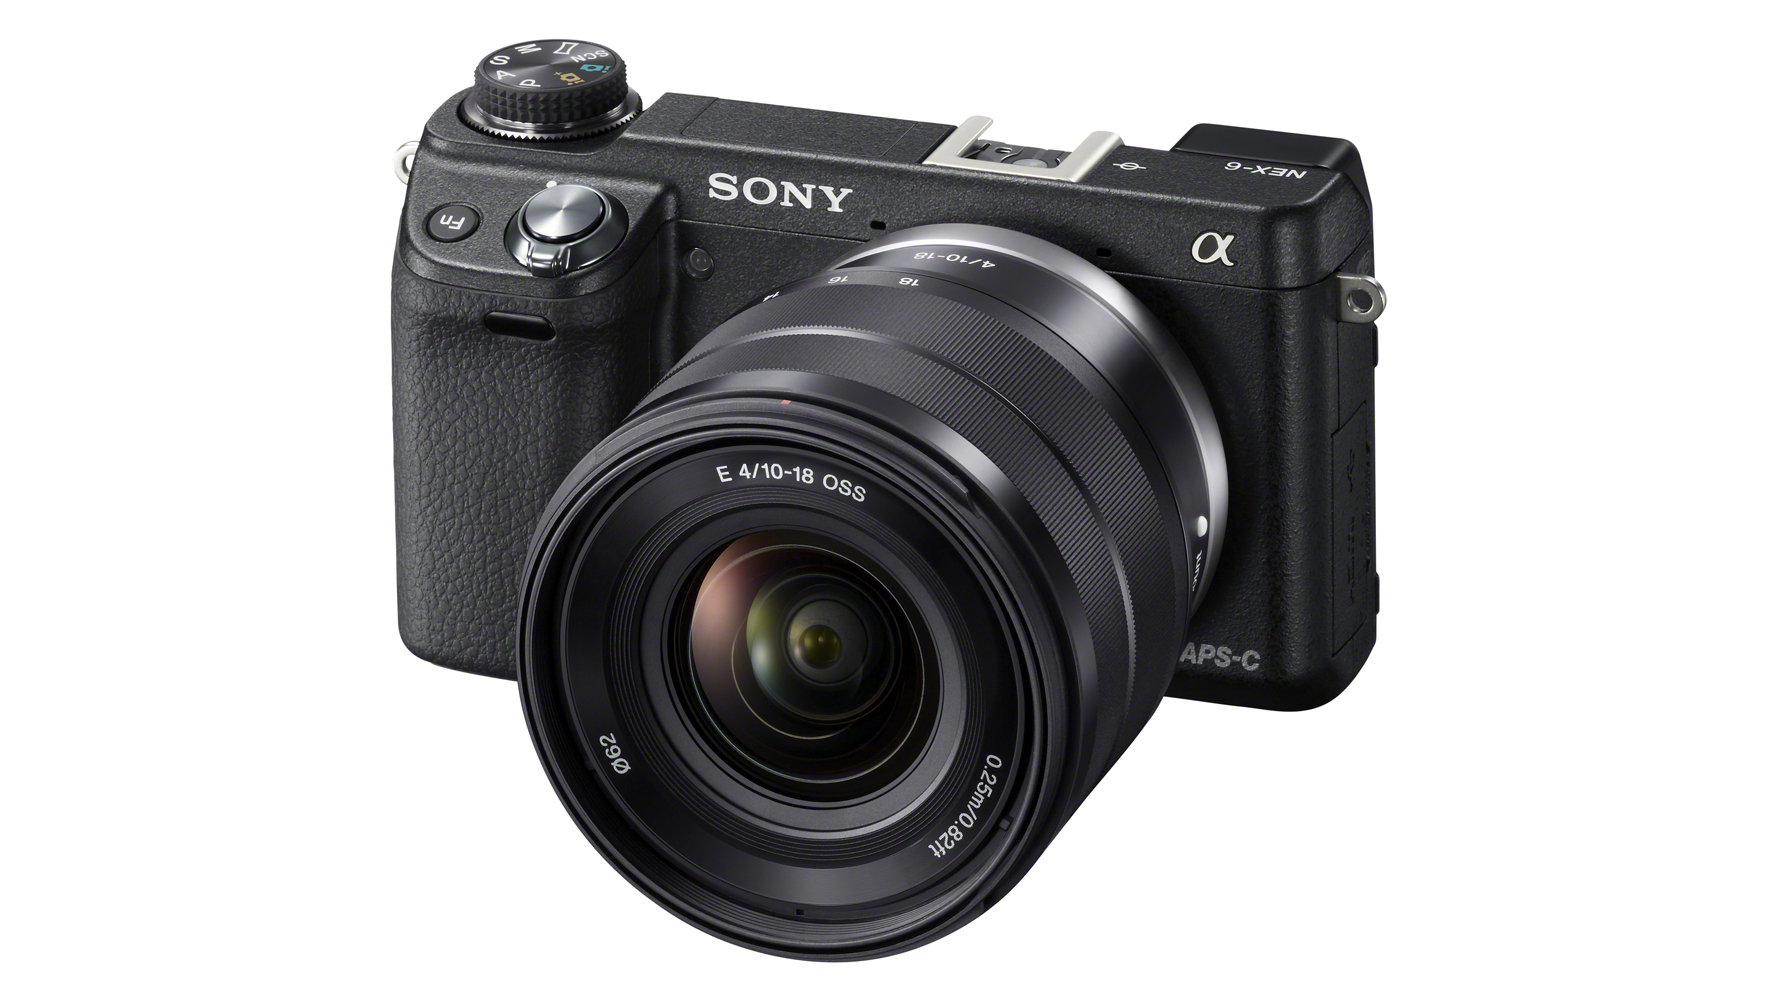 Drivers Update: Sony NEX-6 Digital Camera SEL30M35V2D Lens